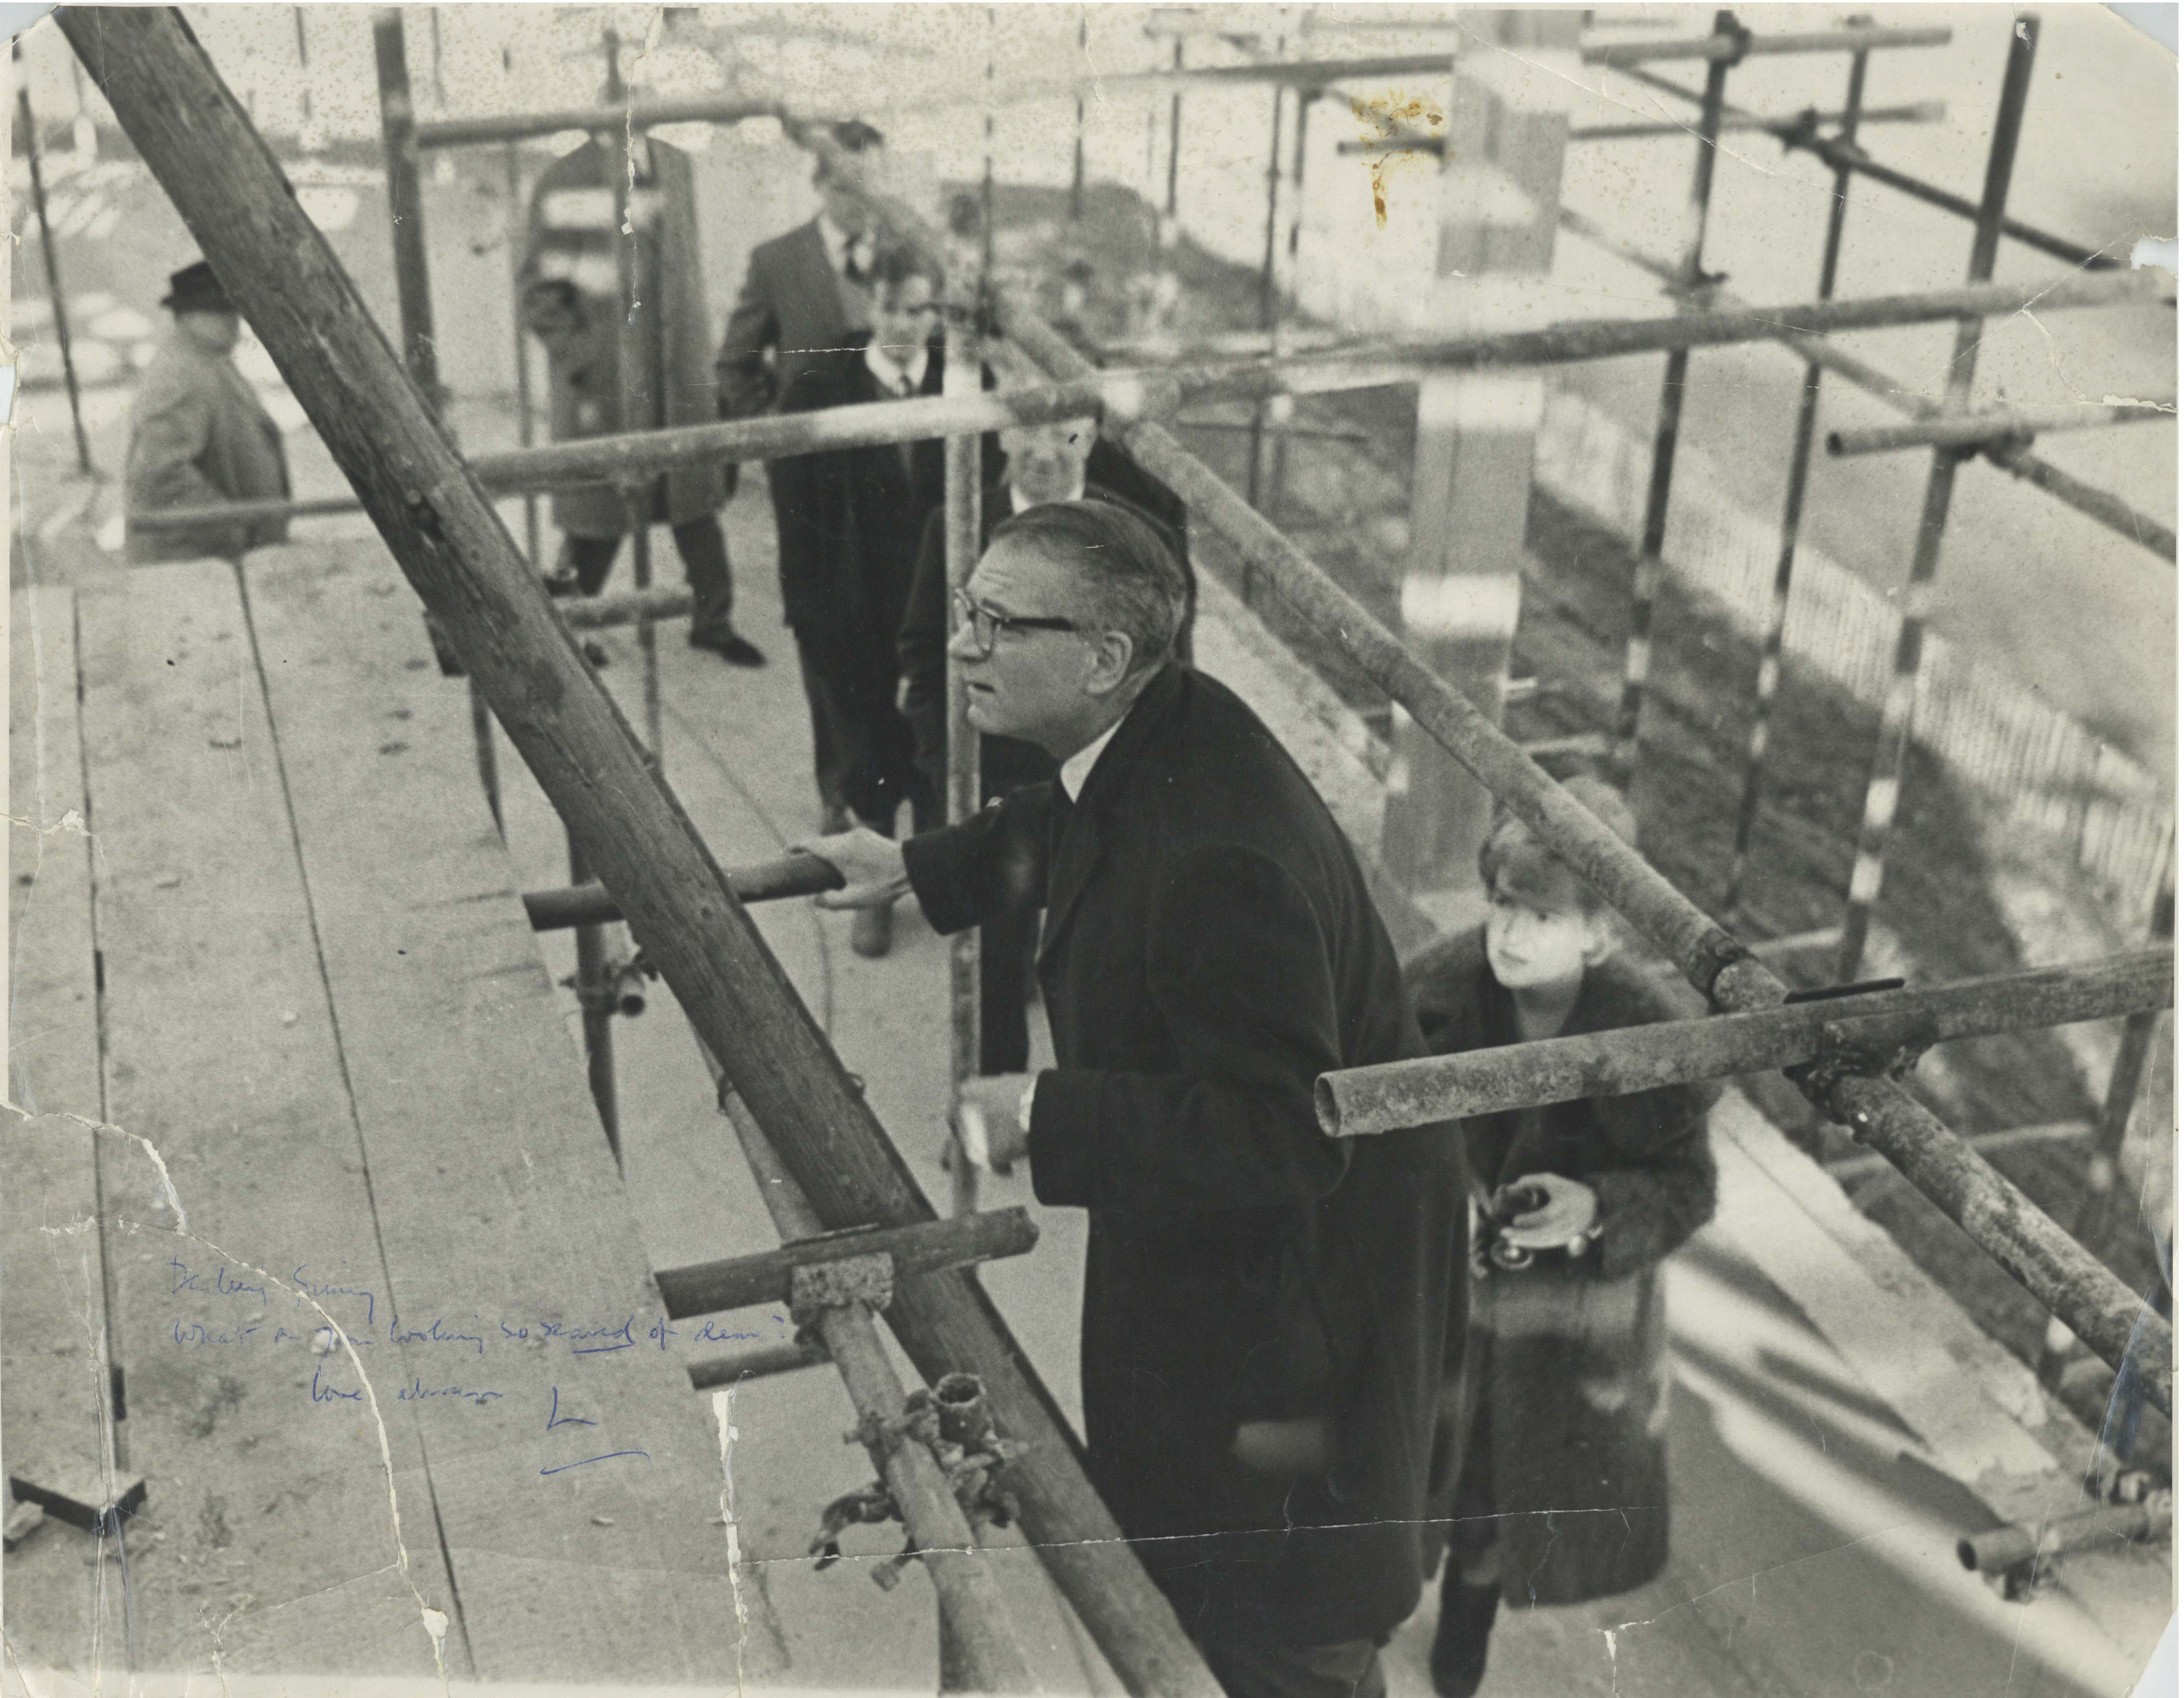 Photograph of Topping Out Ceremony - Signed by Laurence Olivier - 1962 - Memorabilia Collection